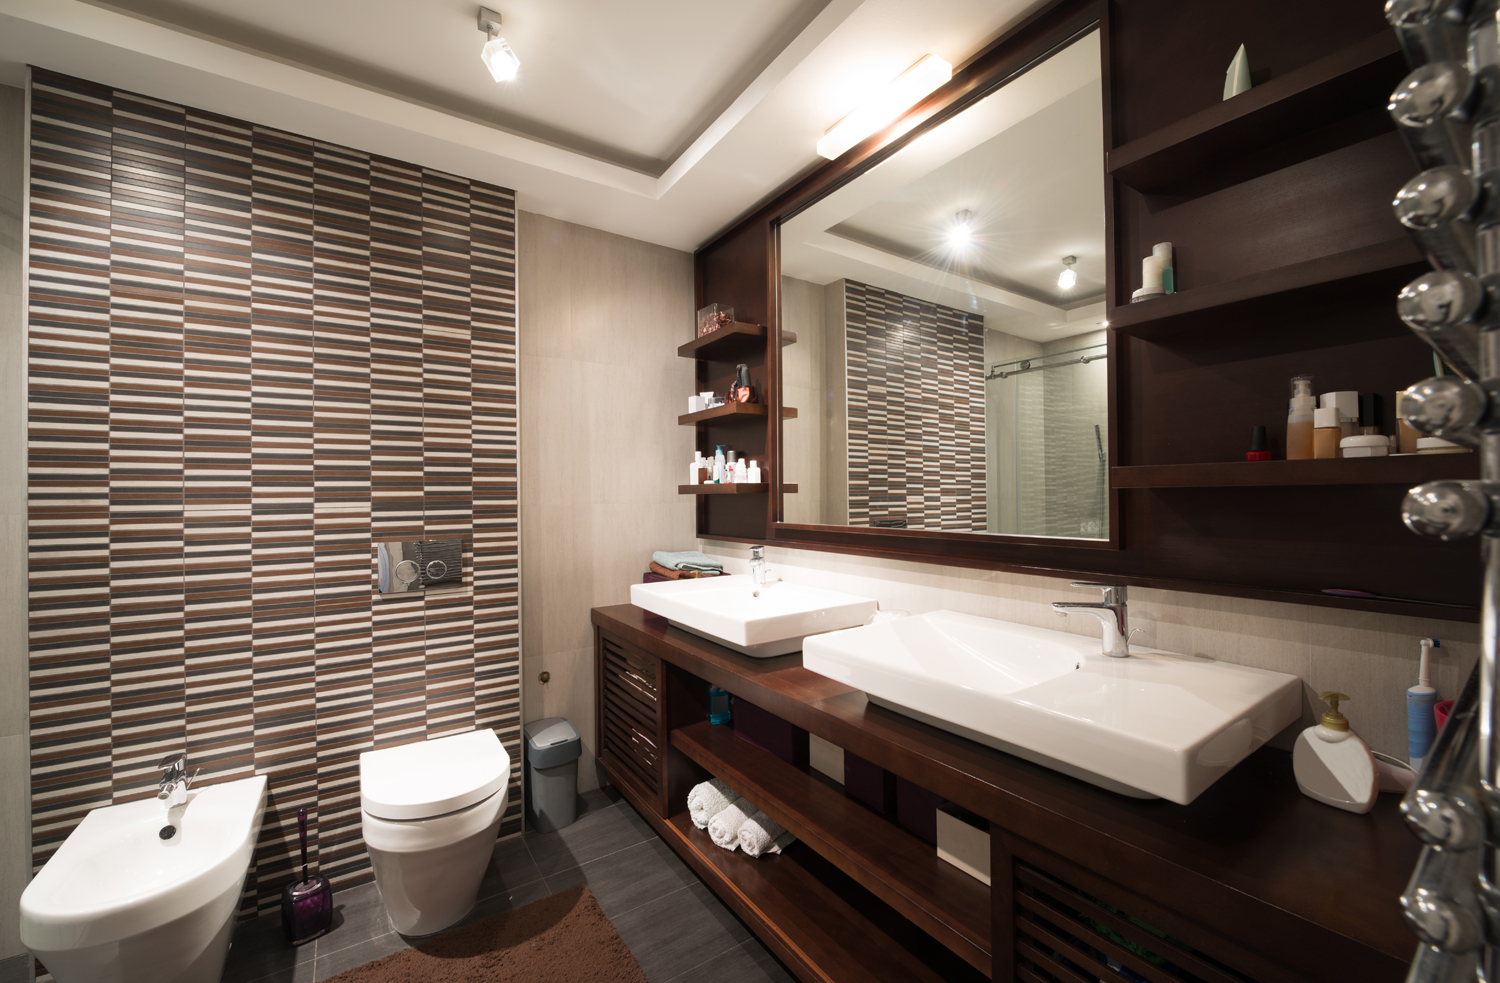 Superb Allure Bathrooms Allure Bathrooms Allure Bathrooms Allure Bathrooms Allure  Bathrooms